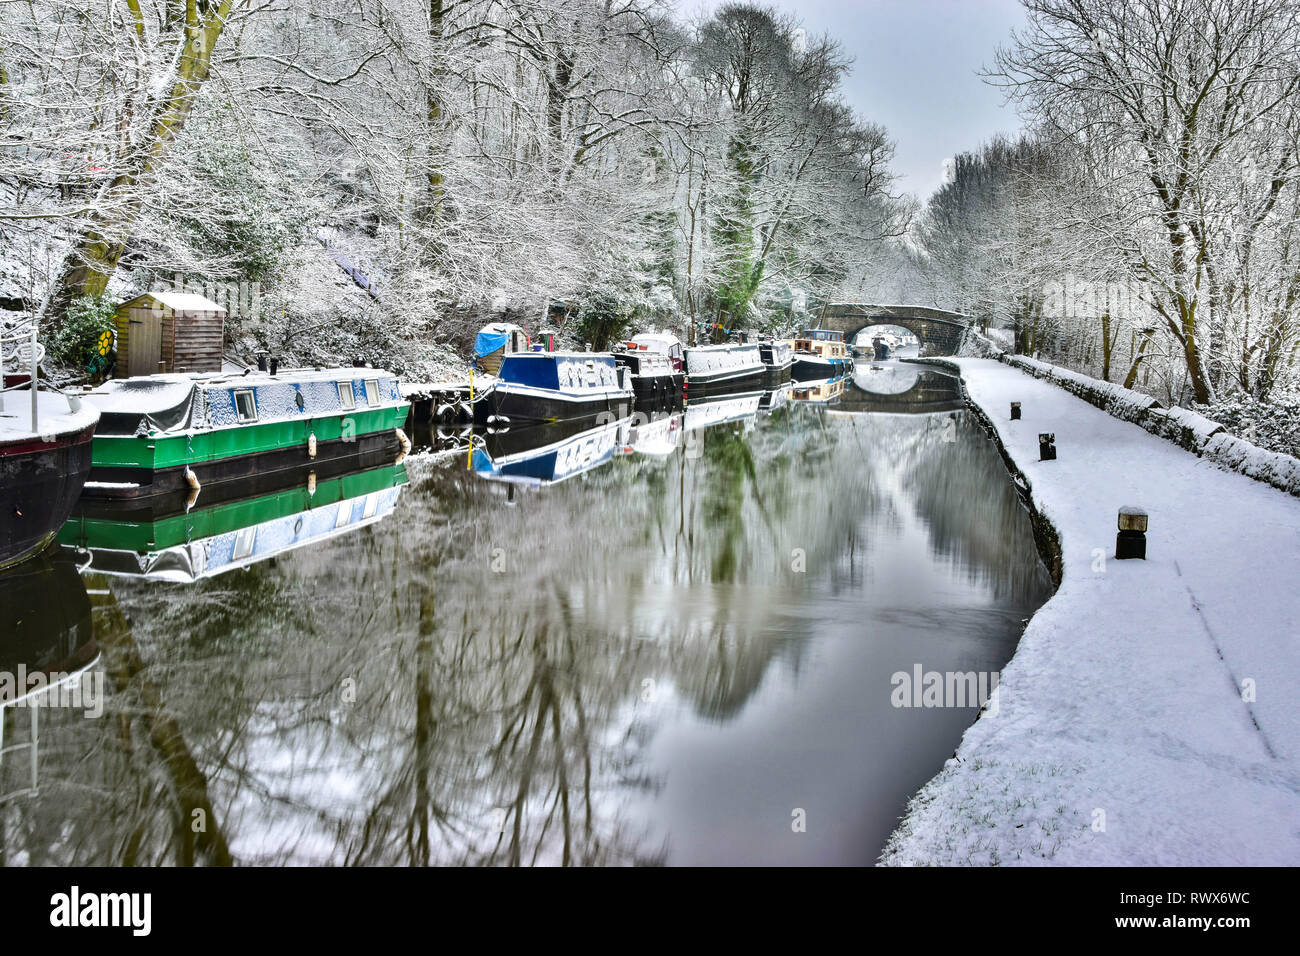 Narrowboats reflected on the frozen wintry snowy Rochdale Canal and towpath, Hebden Bridge, Calderdale, West Yorkshire - Stock Image